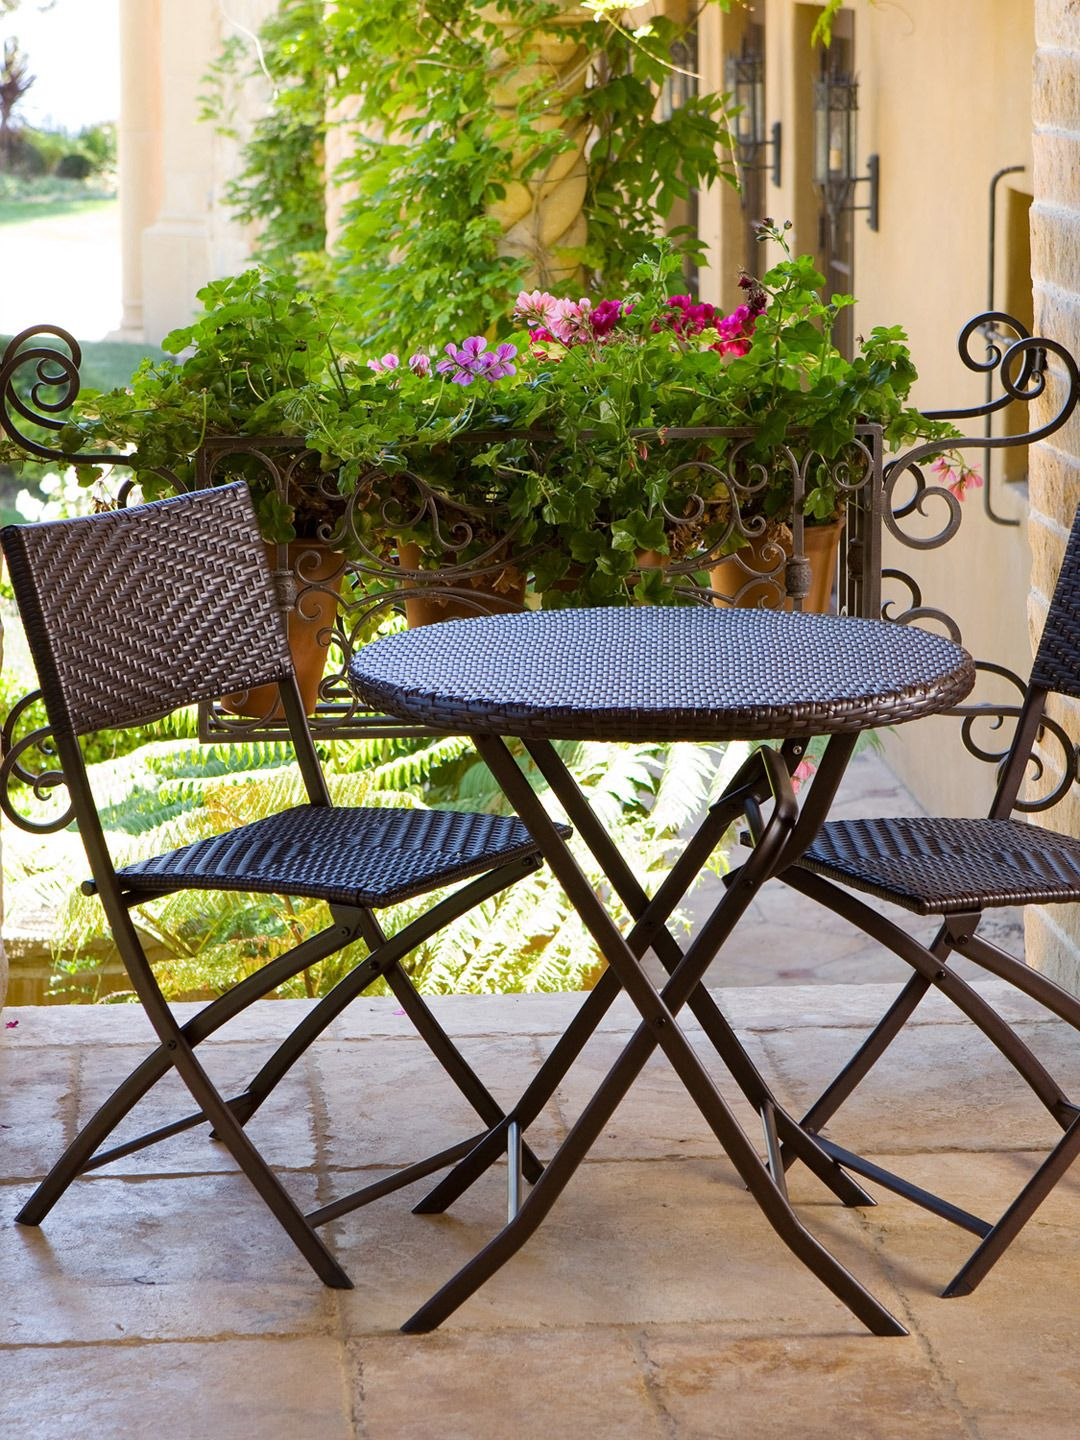 Cute Bistro Set Balcony Furniture Patio Wicker Resin